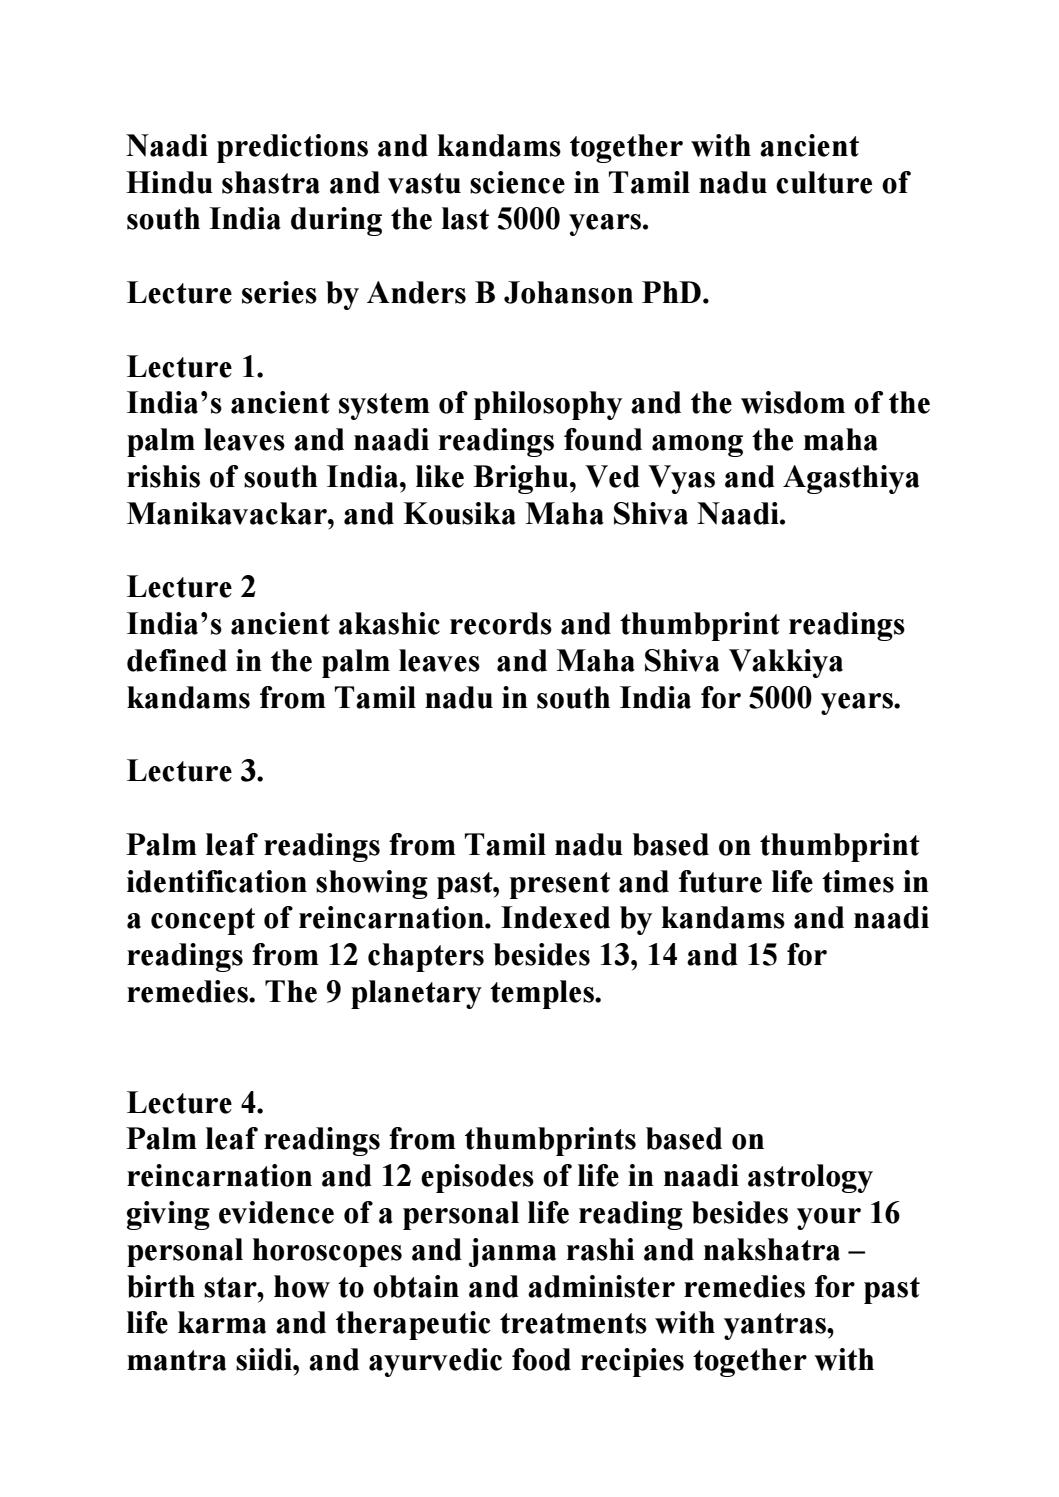 Lectures agastia nadireadings and philosophy by premasagarr